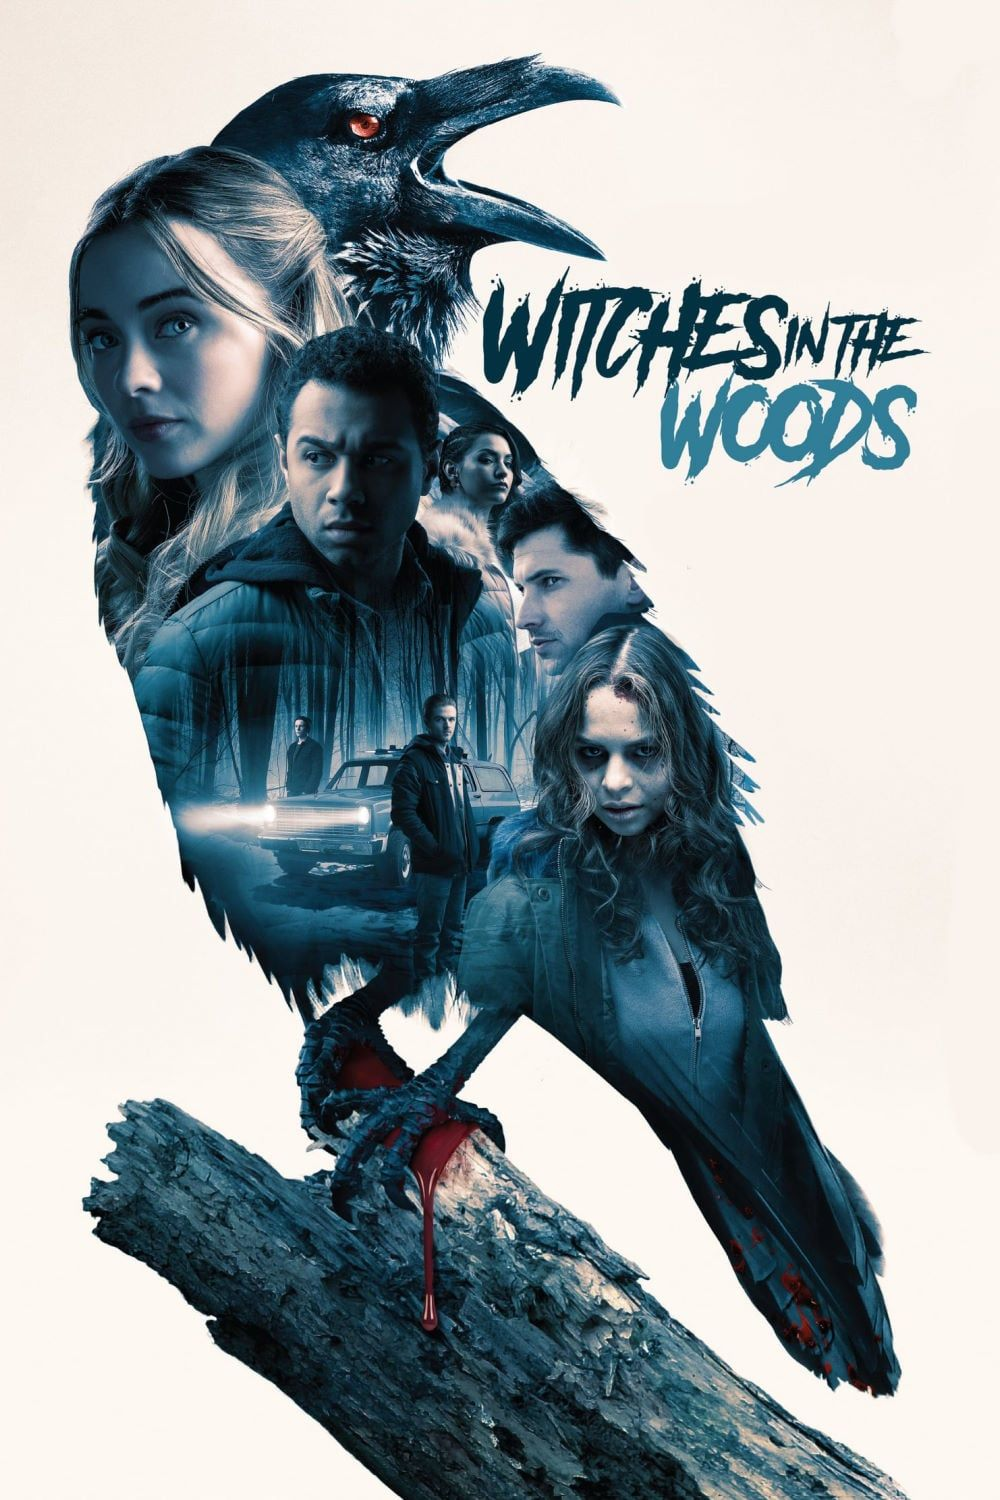 Witches In The Woods Check More Xmovies8 Videos At Https Www1 Xmovies8 So Movies Witches In T With Images Into The Woods Movie Free Movies Online Full Movies Online Free